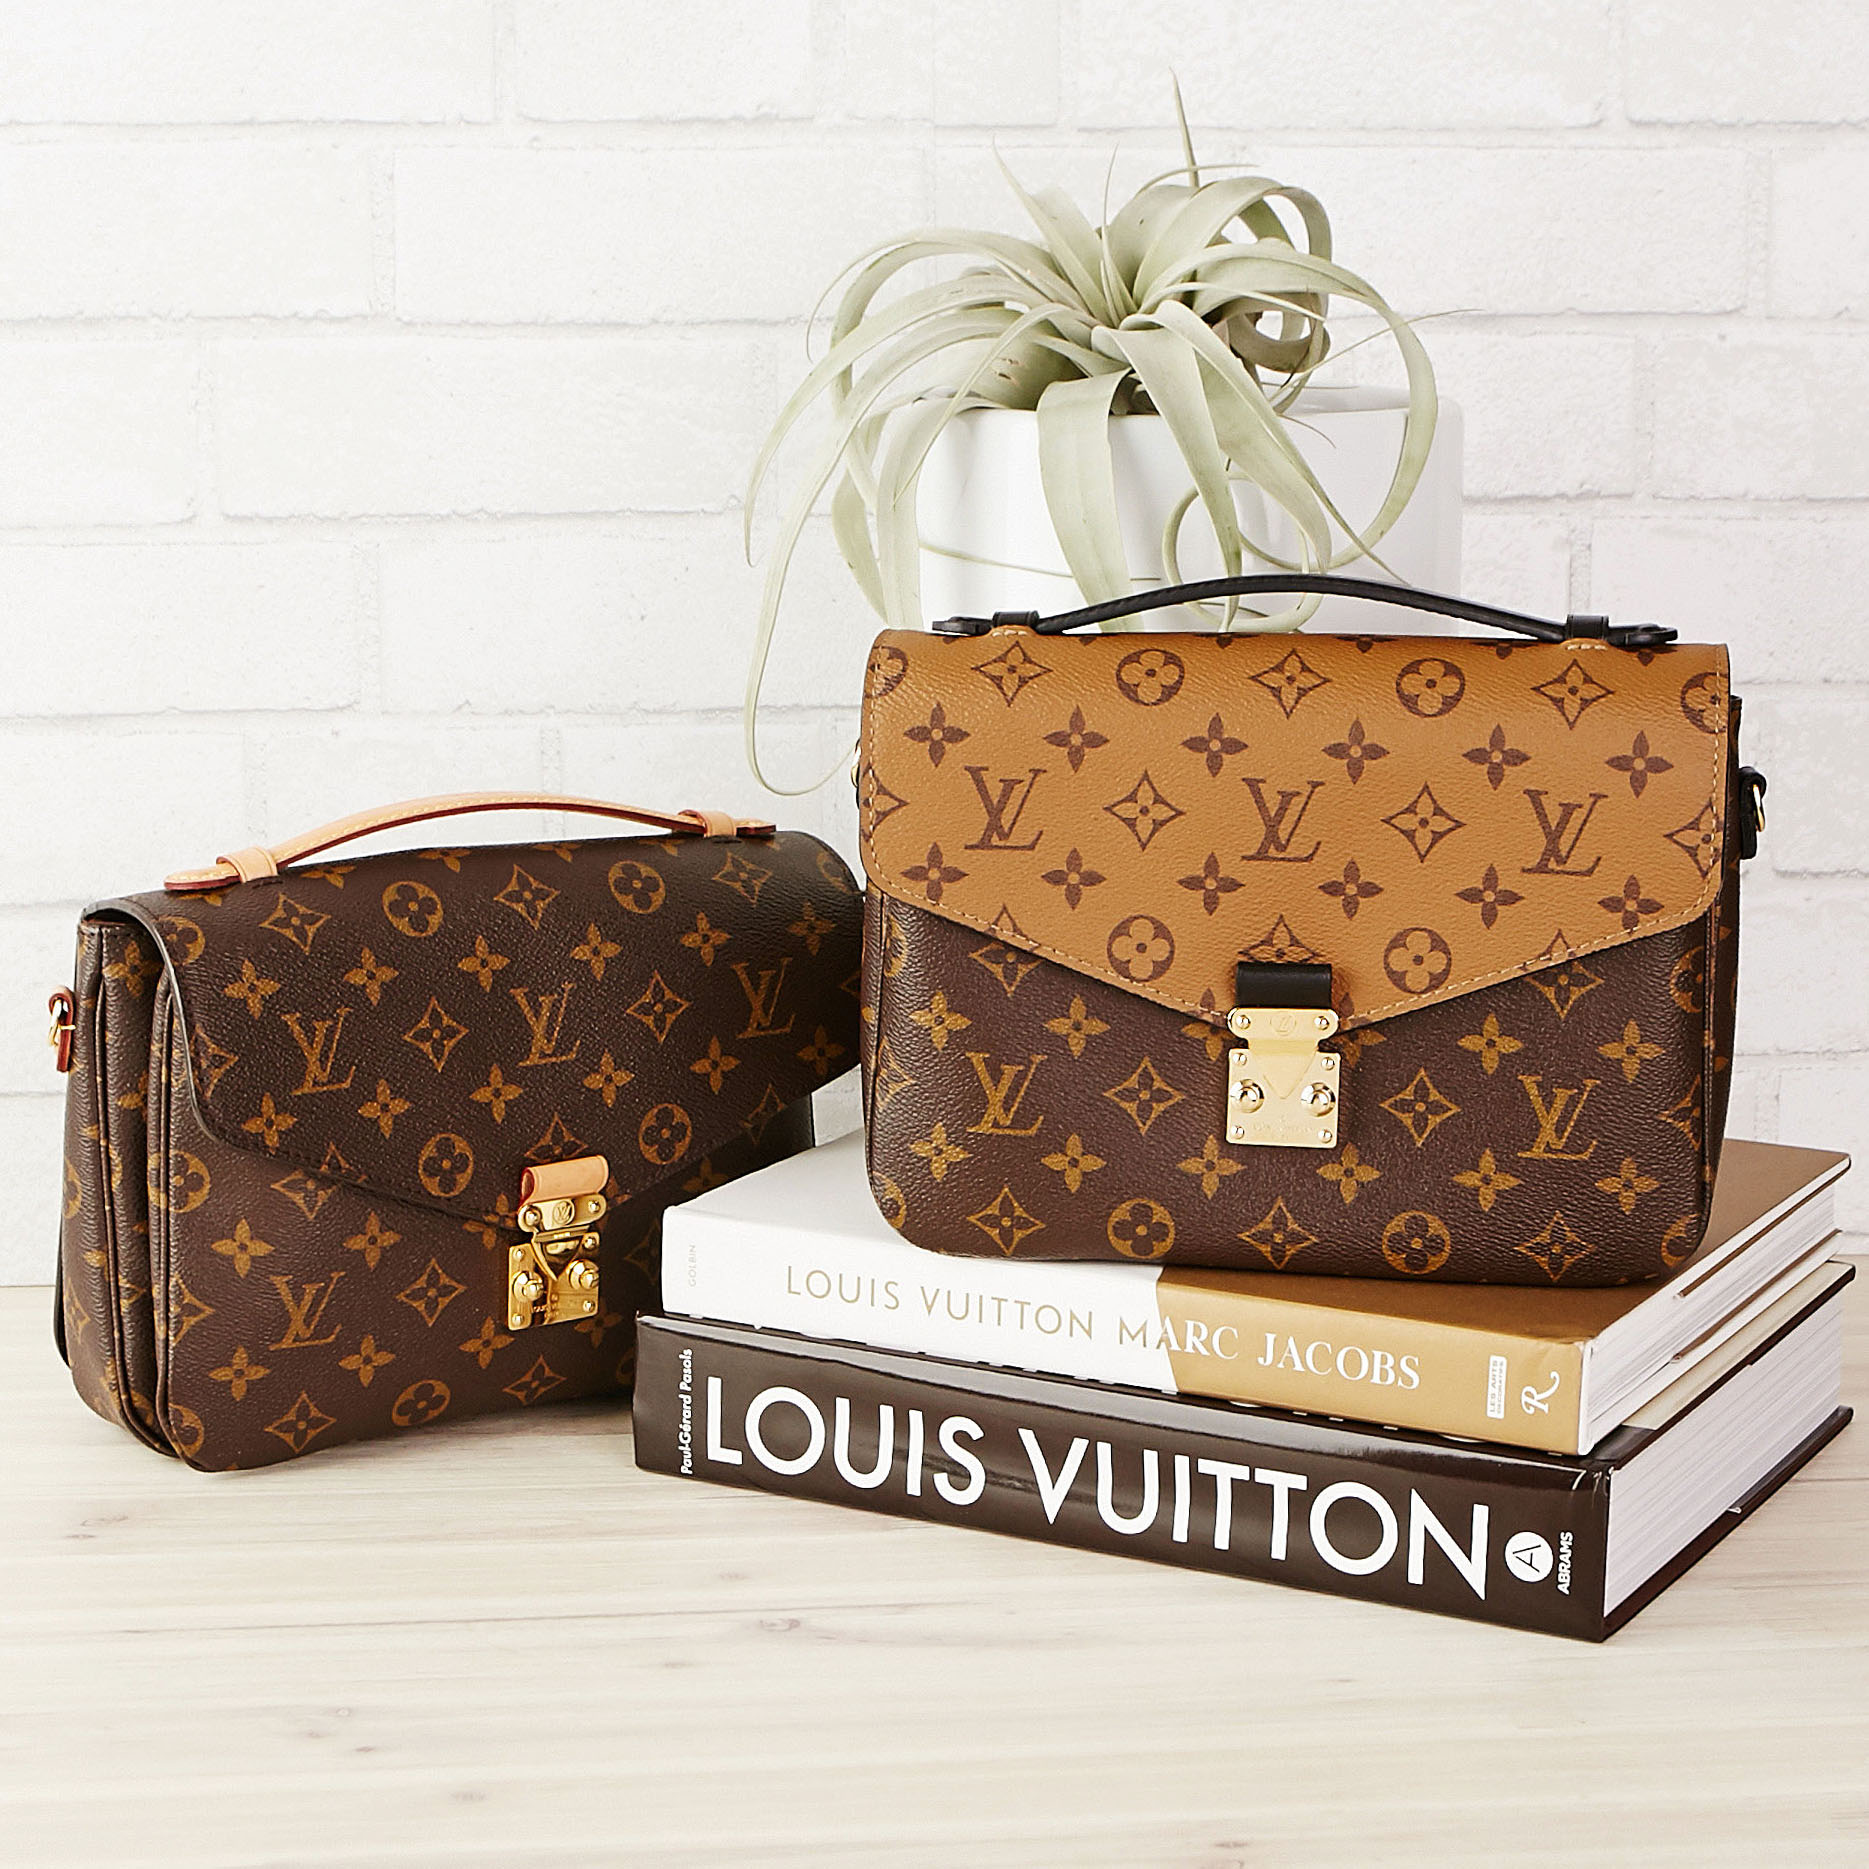 55ceb9ec2b4 Two Pochette Metis handbags are better than one! Love the Louis Vuitton  Pochette Metis in